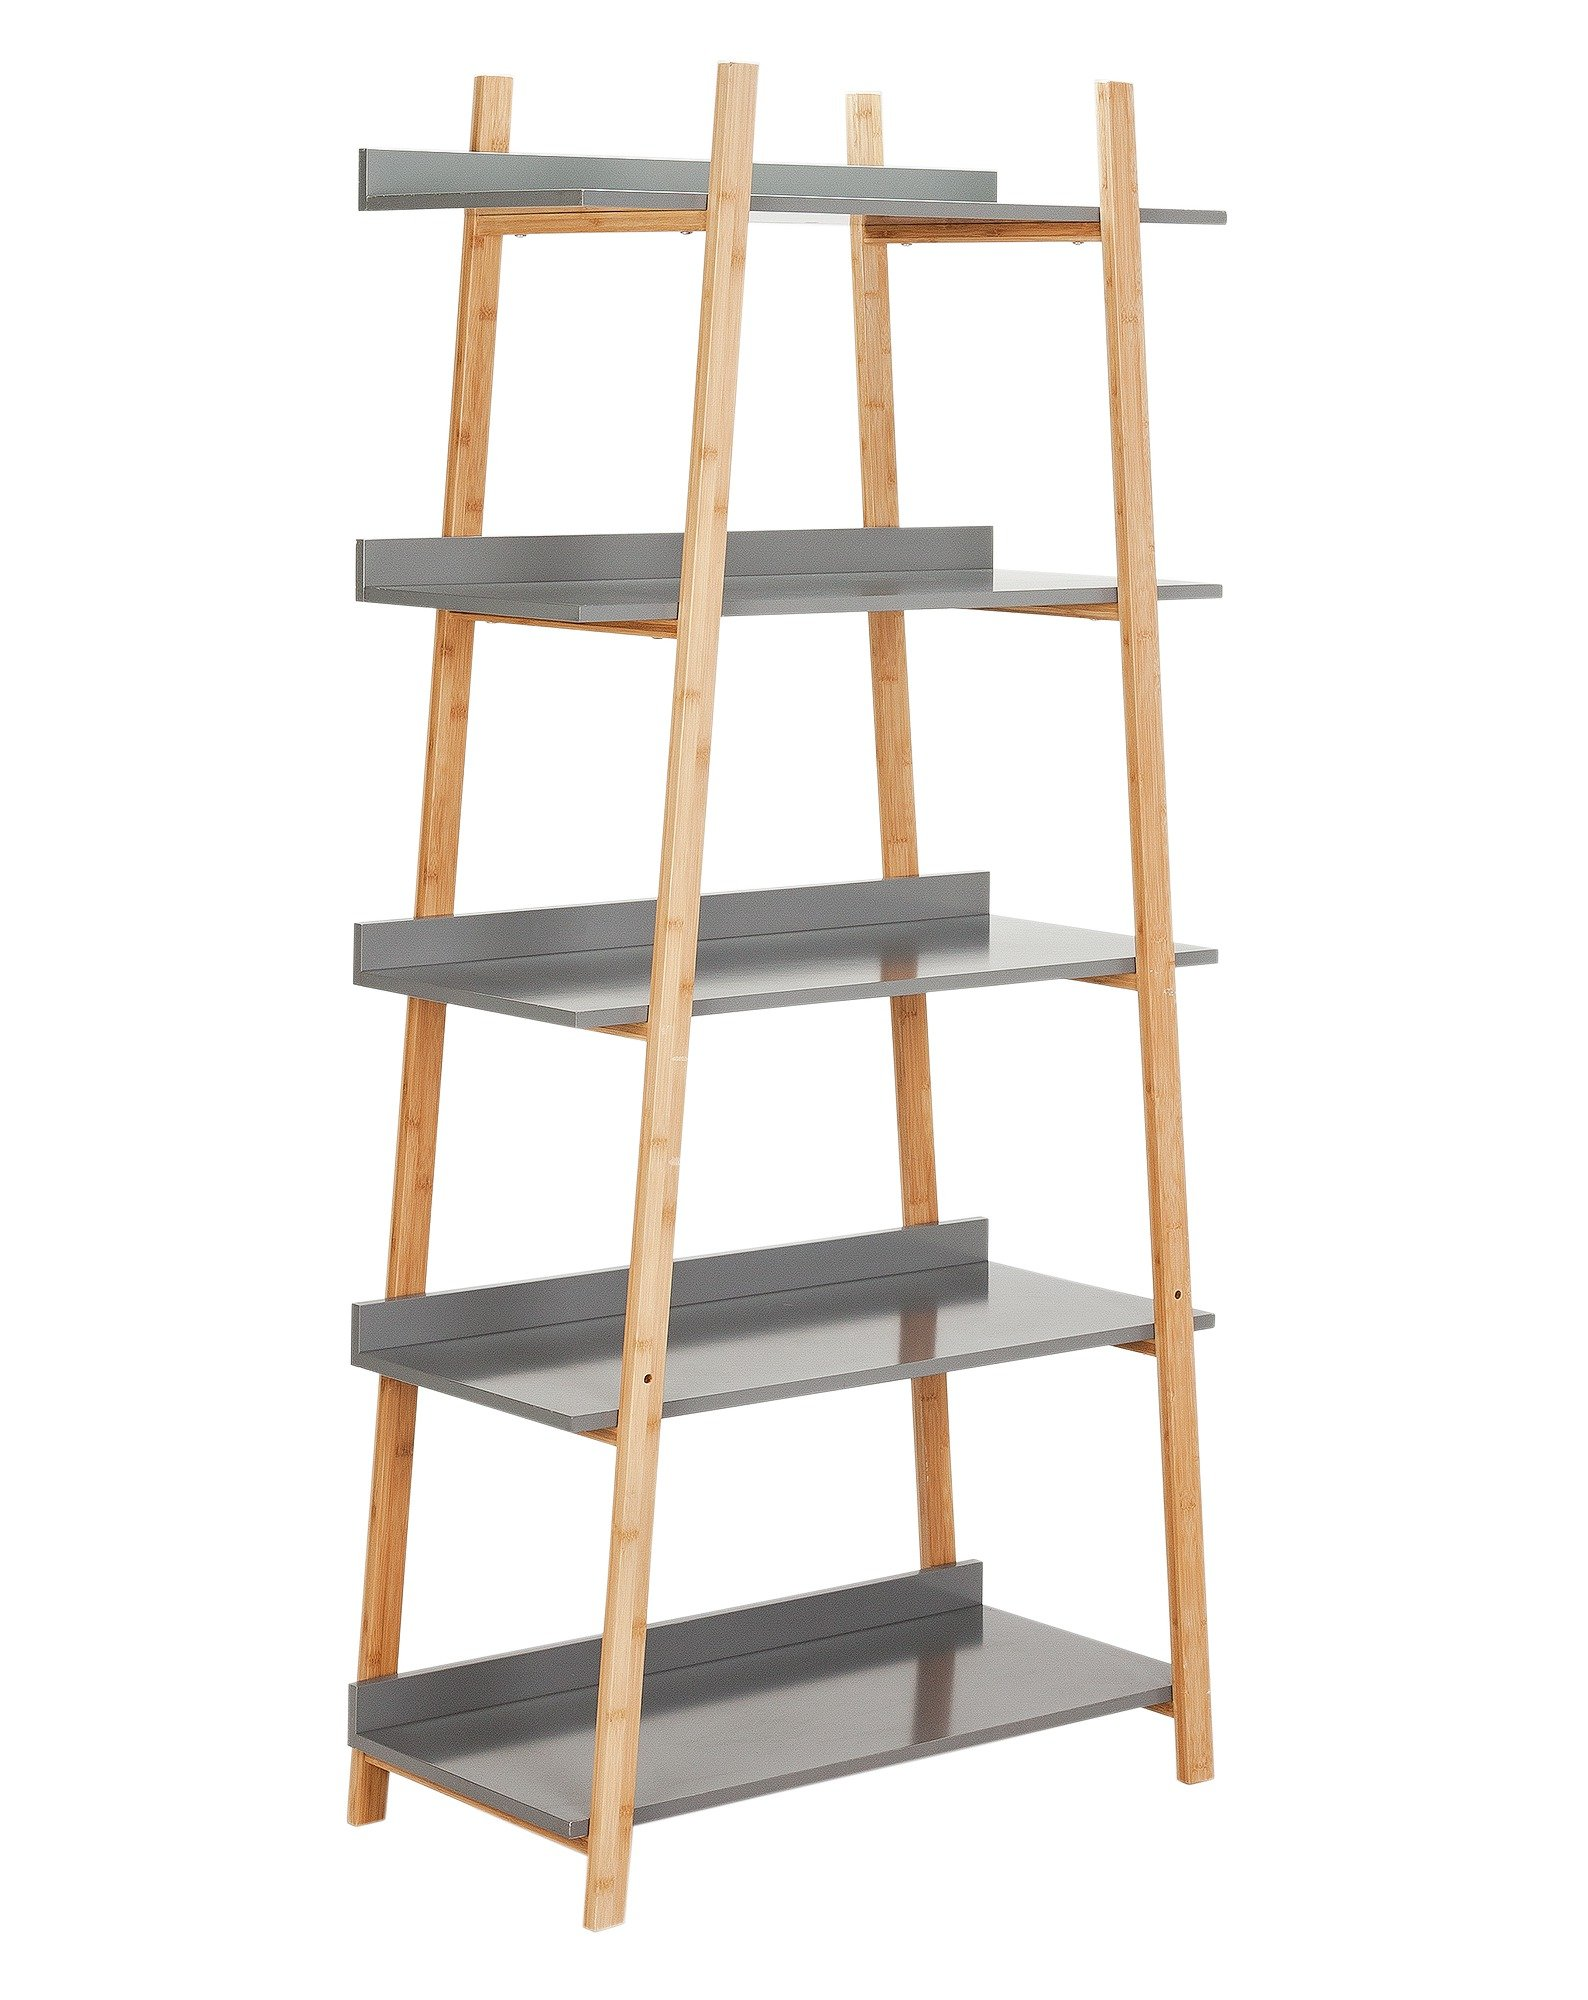 Hygena Skanda 5 Tier Bamboo Shelving Unit - Grey